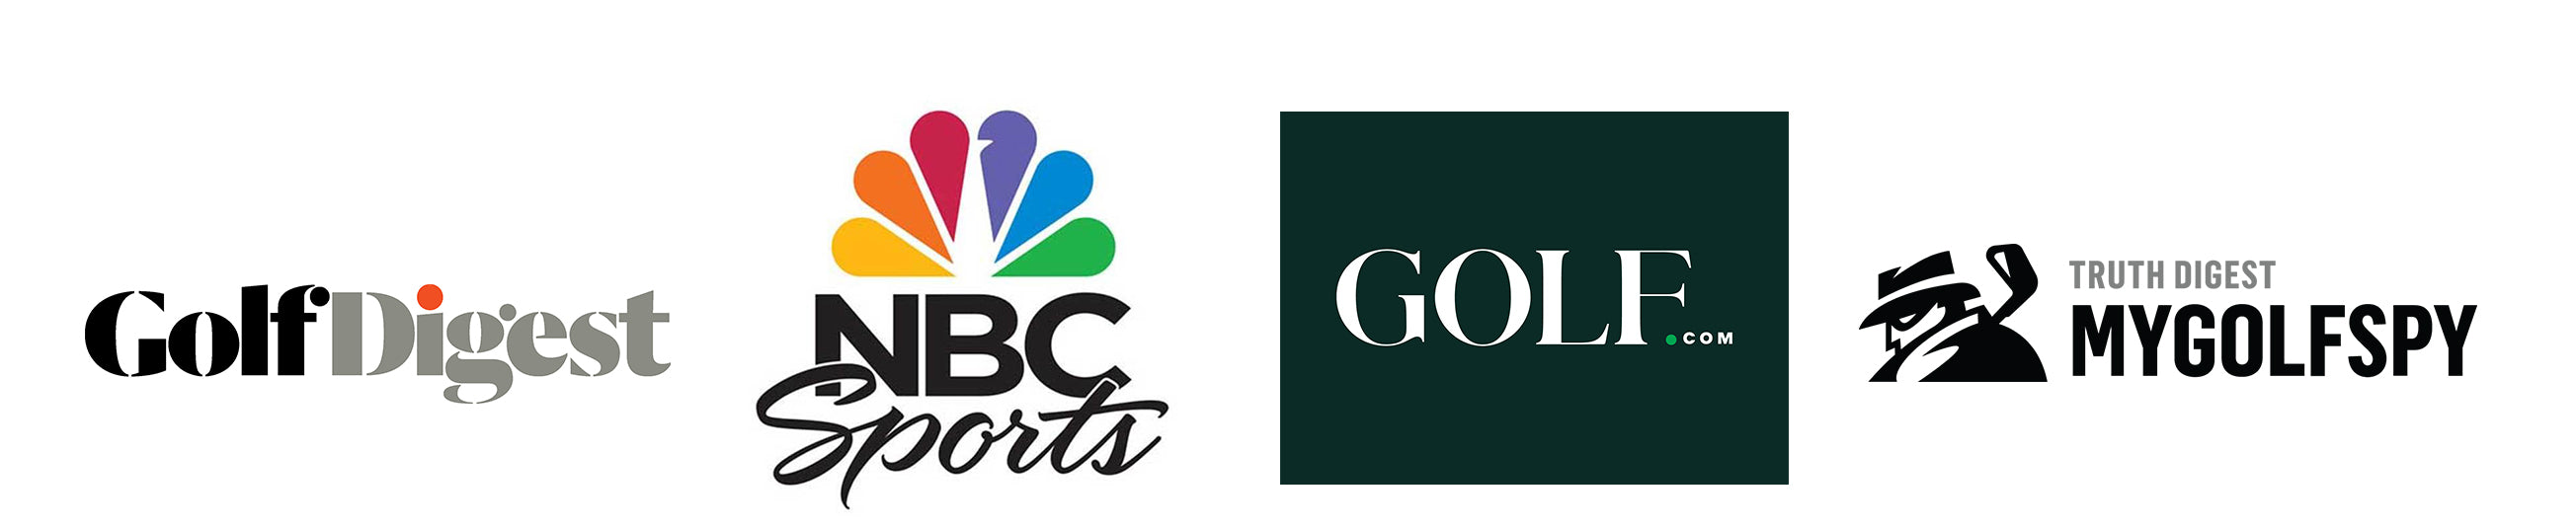 Palm featured in Golf Digest, NBC, Golf.com, MyGolfSpy